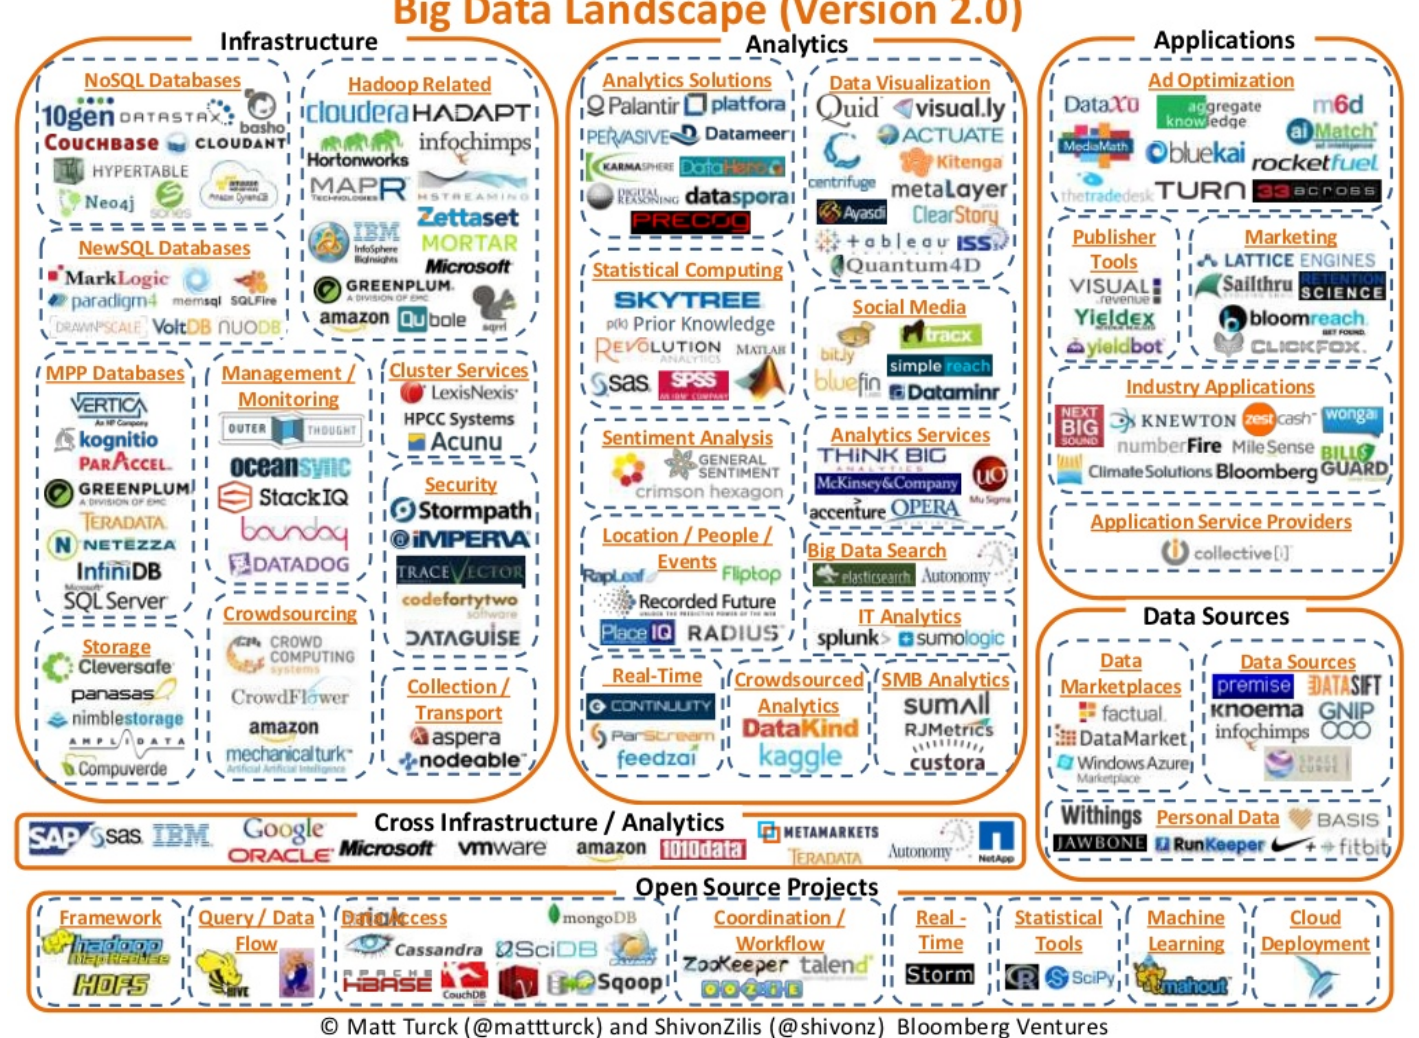 Big-data-landscape-version-2-2013